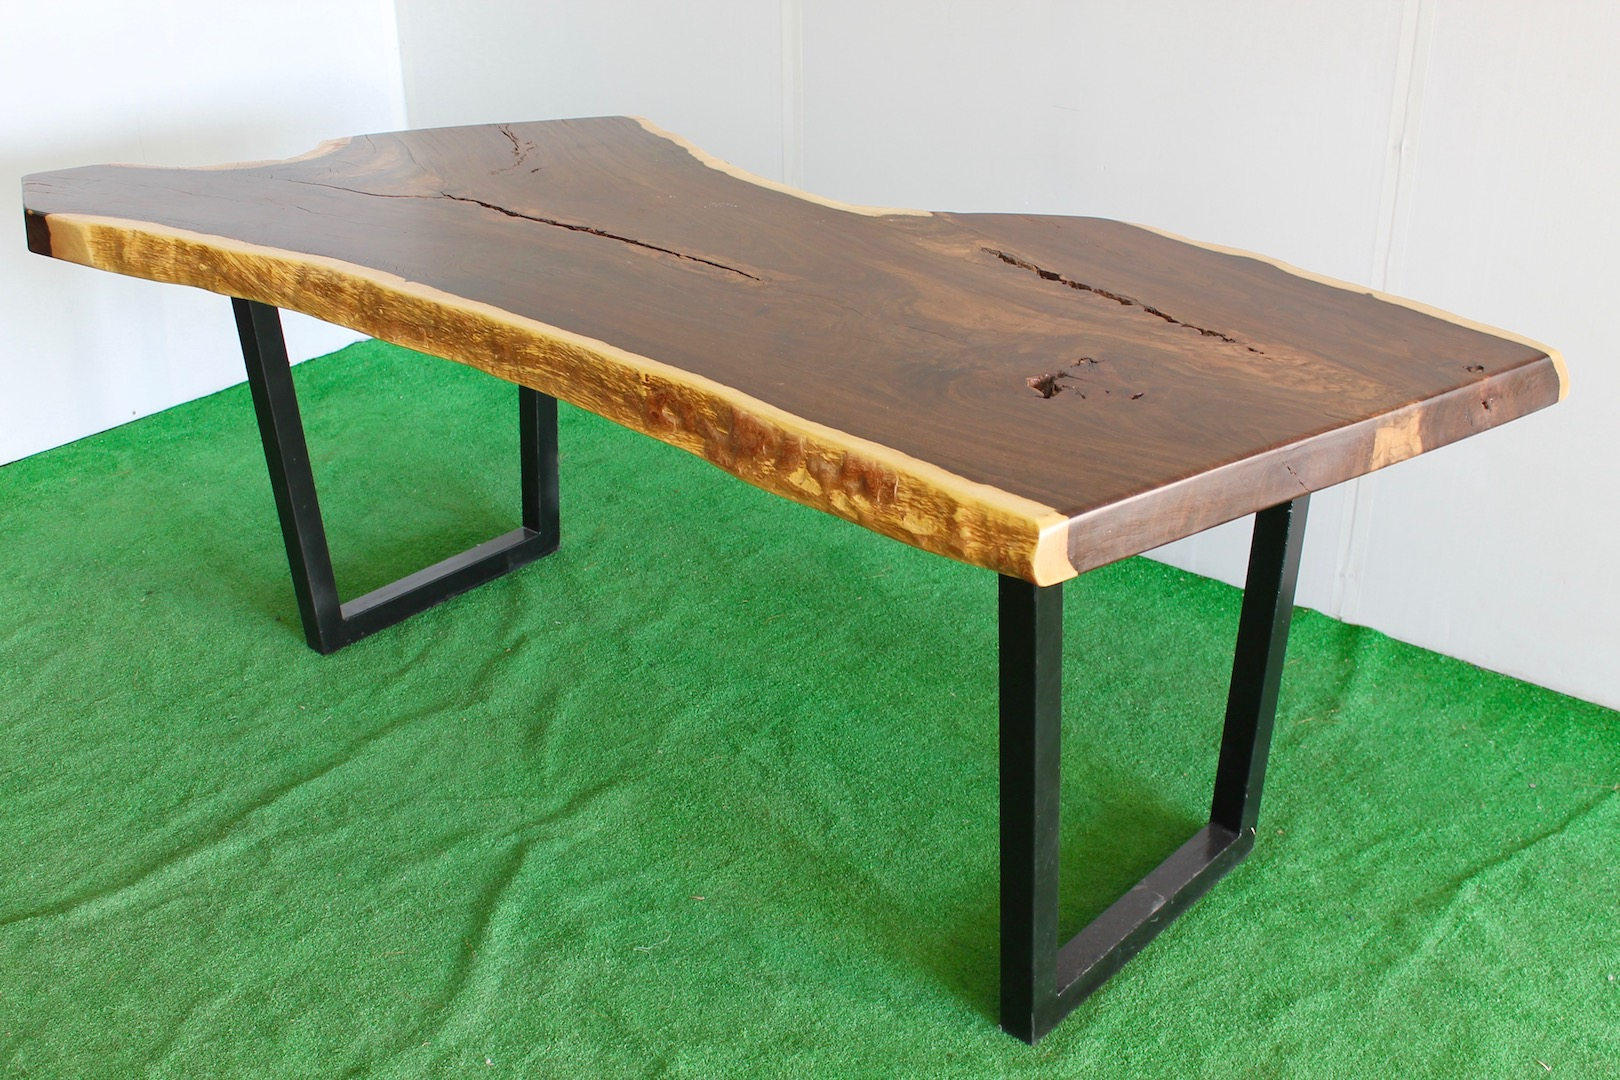 Exquisite bespoke waney edge table this wonderful bespoke for Table 430 52